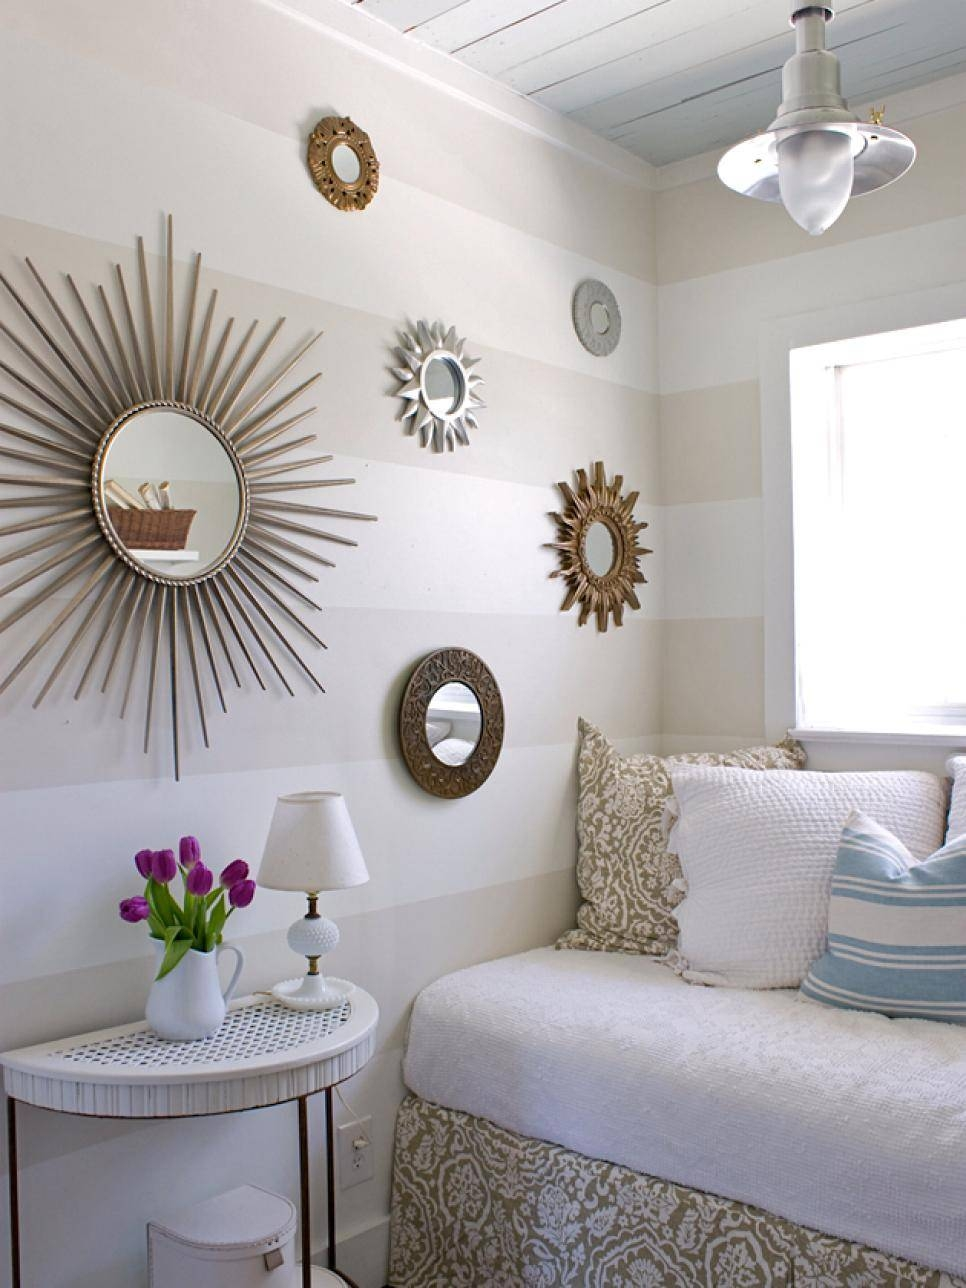 Bedroom Small Decorative Wall Mirrors : Small Decorative Wall Within Small Decorative Mirrors (View 4 of 25)